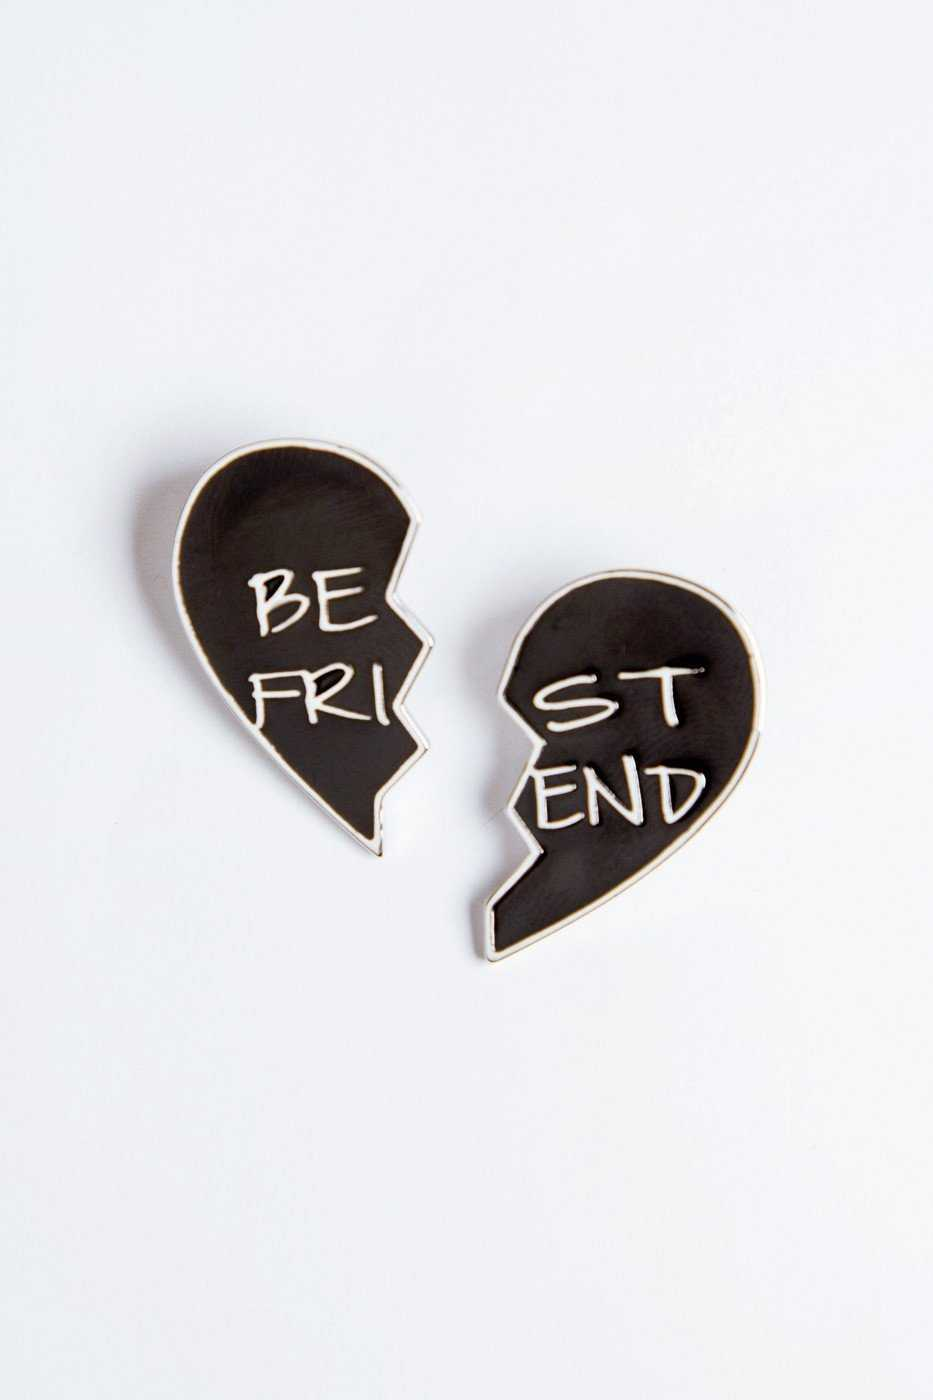 745bfaf7f1a Accessories - Best Friends Pin Set Accessories - Best Friends Pin Set ...